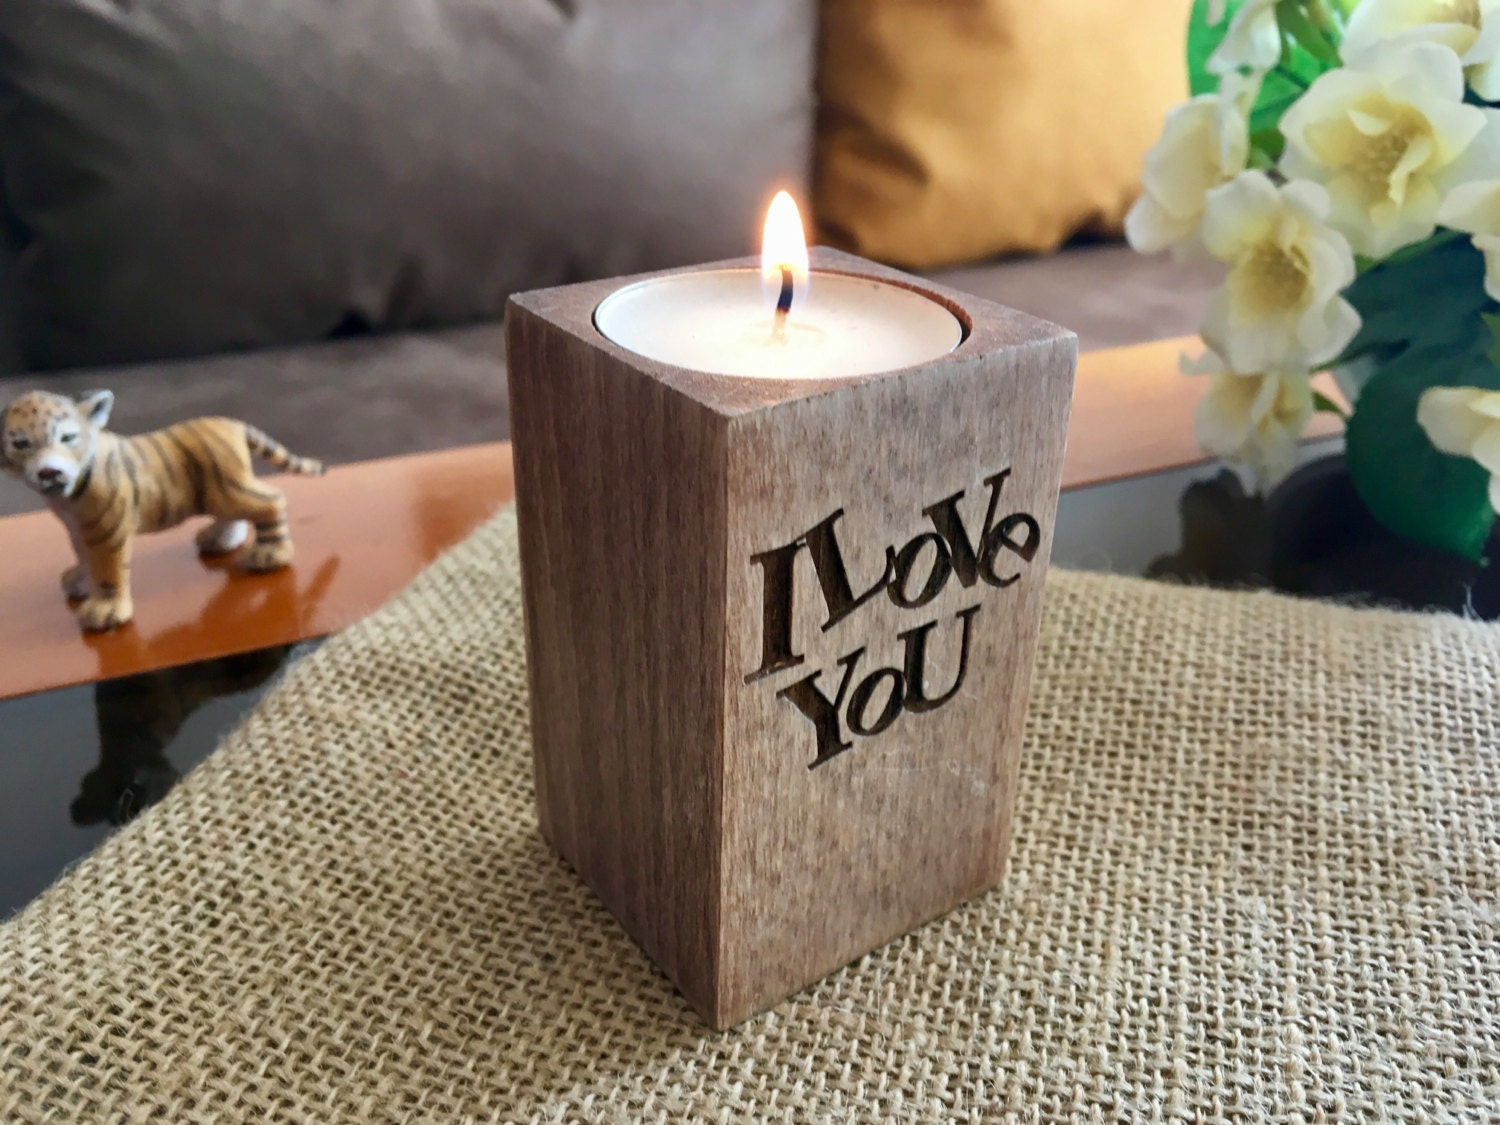 Decorative Candle Holders I Love You Mom Engraved Tealight Candle Holder Wooden Candle